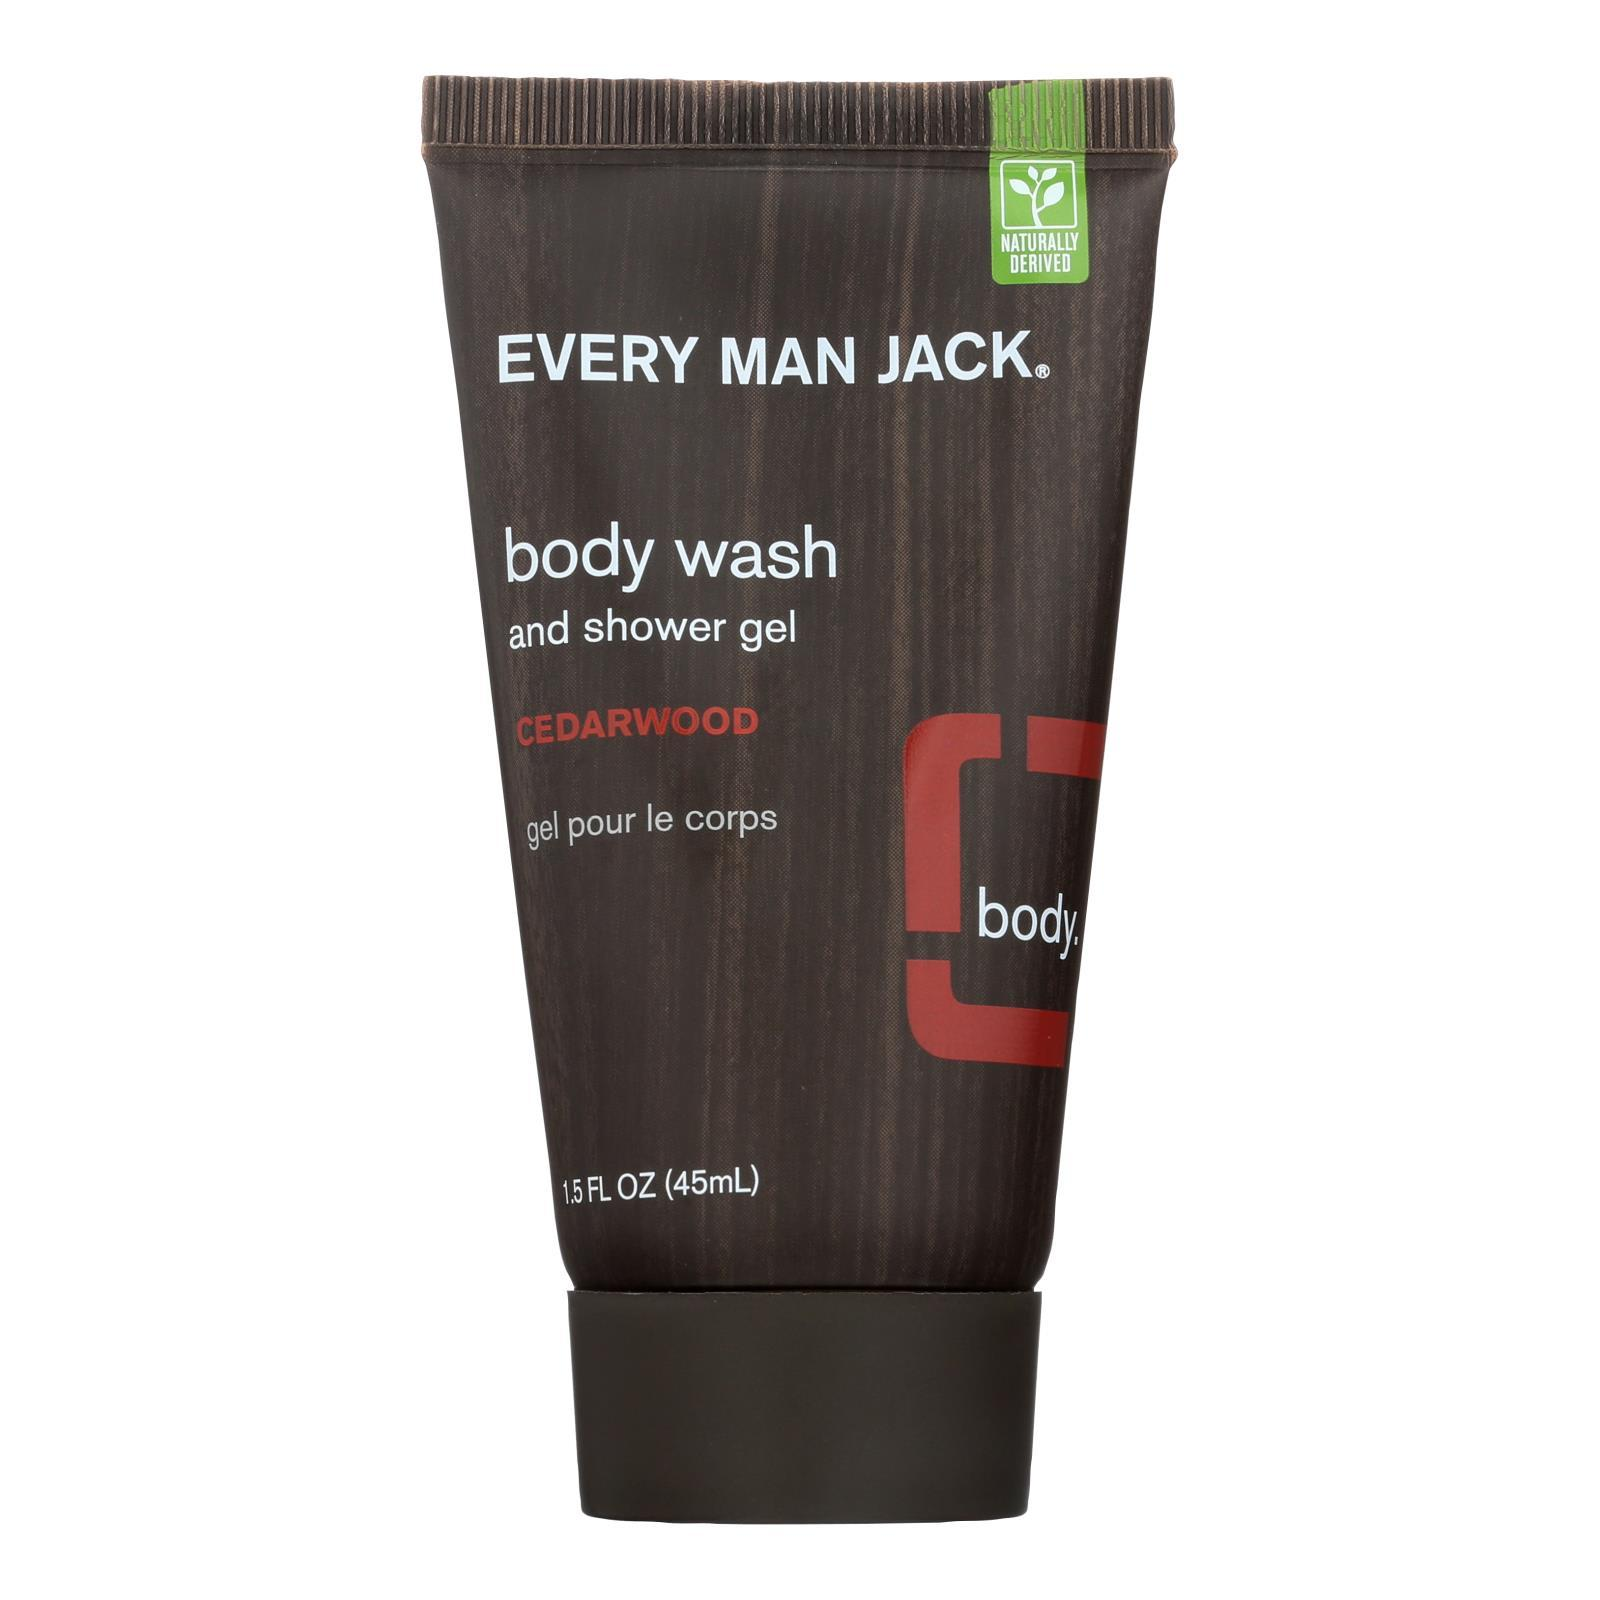 Primary image for Every Man Jack Body Wash Cedar wood - Body Wash - 1 FL oz.